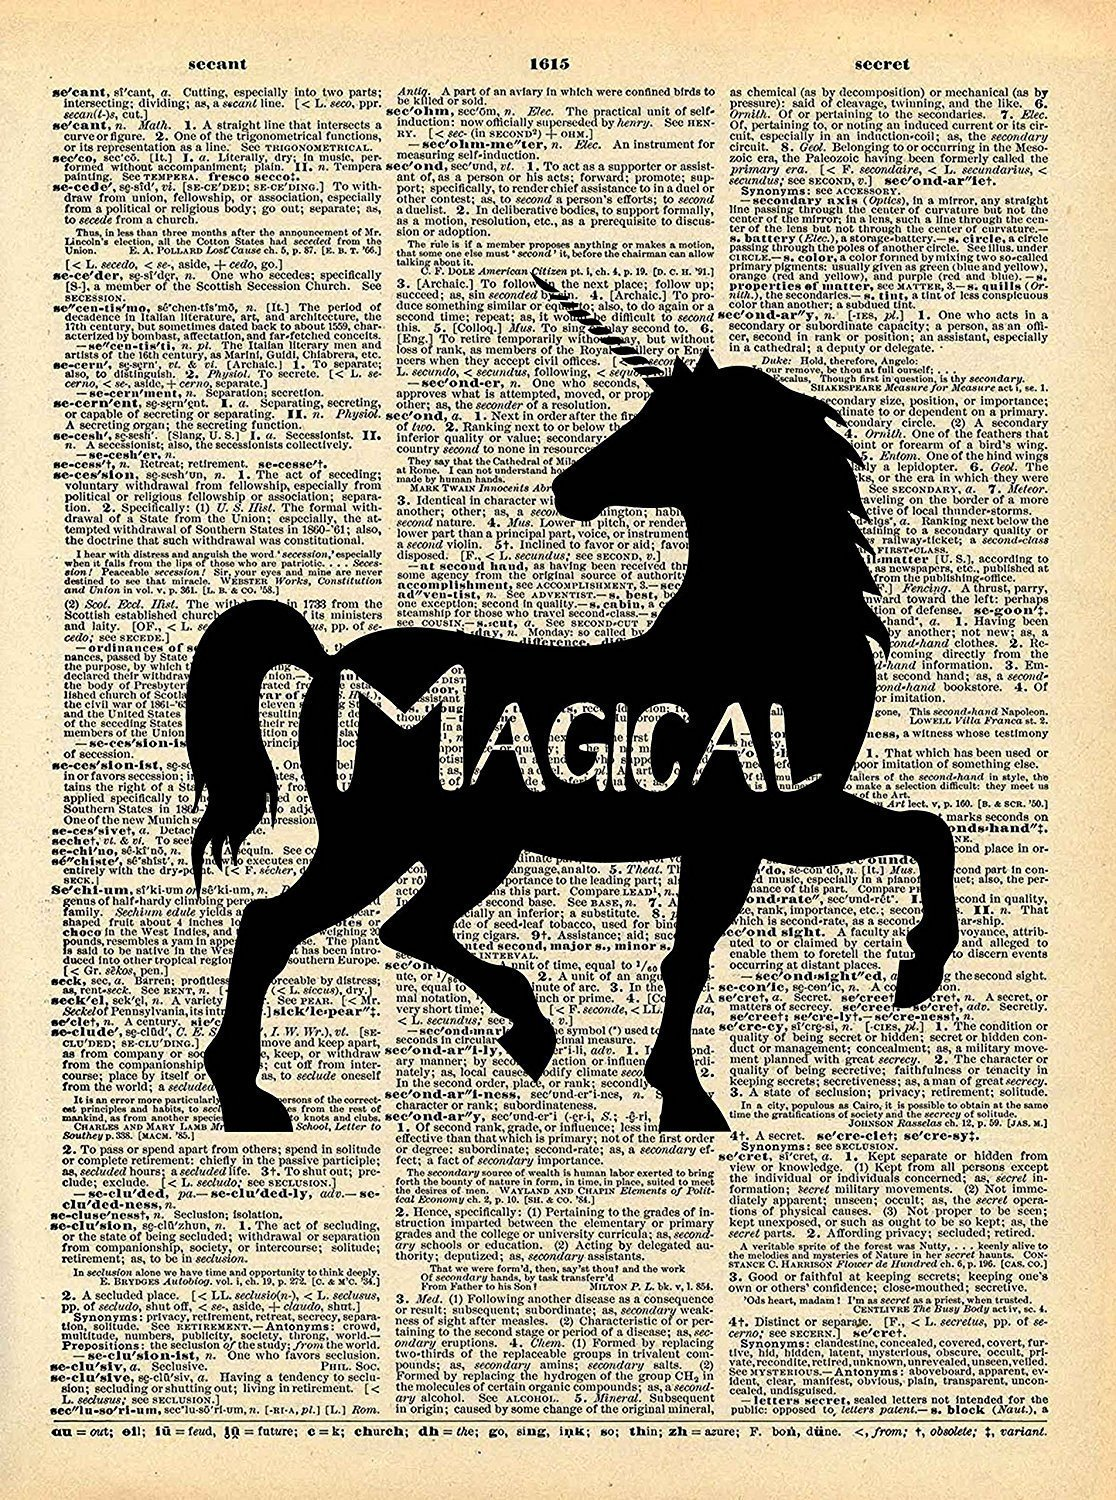 Unicorn Magical Art - Vintage Dictionary Print 8x10 inch Home Vintage Art Abstract Prints Wall Art for Home Decor Wall Decor Living Room Bedroom Ready-to-Frame